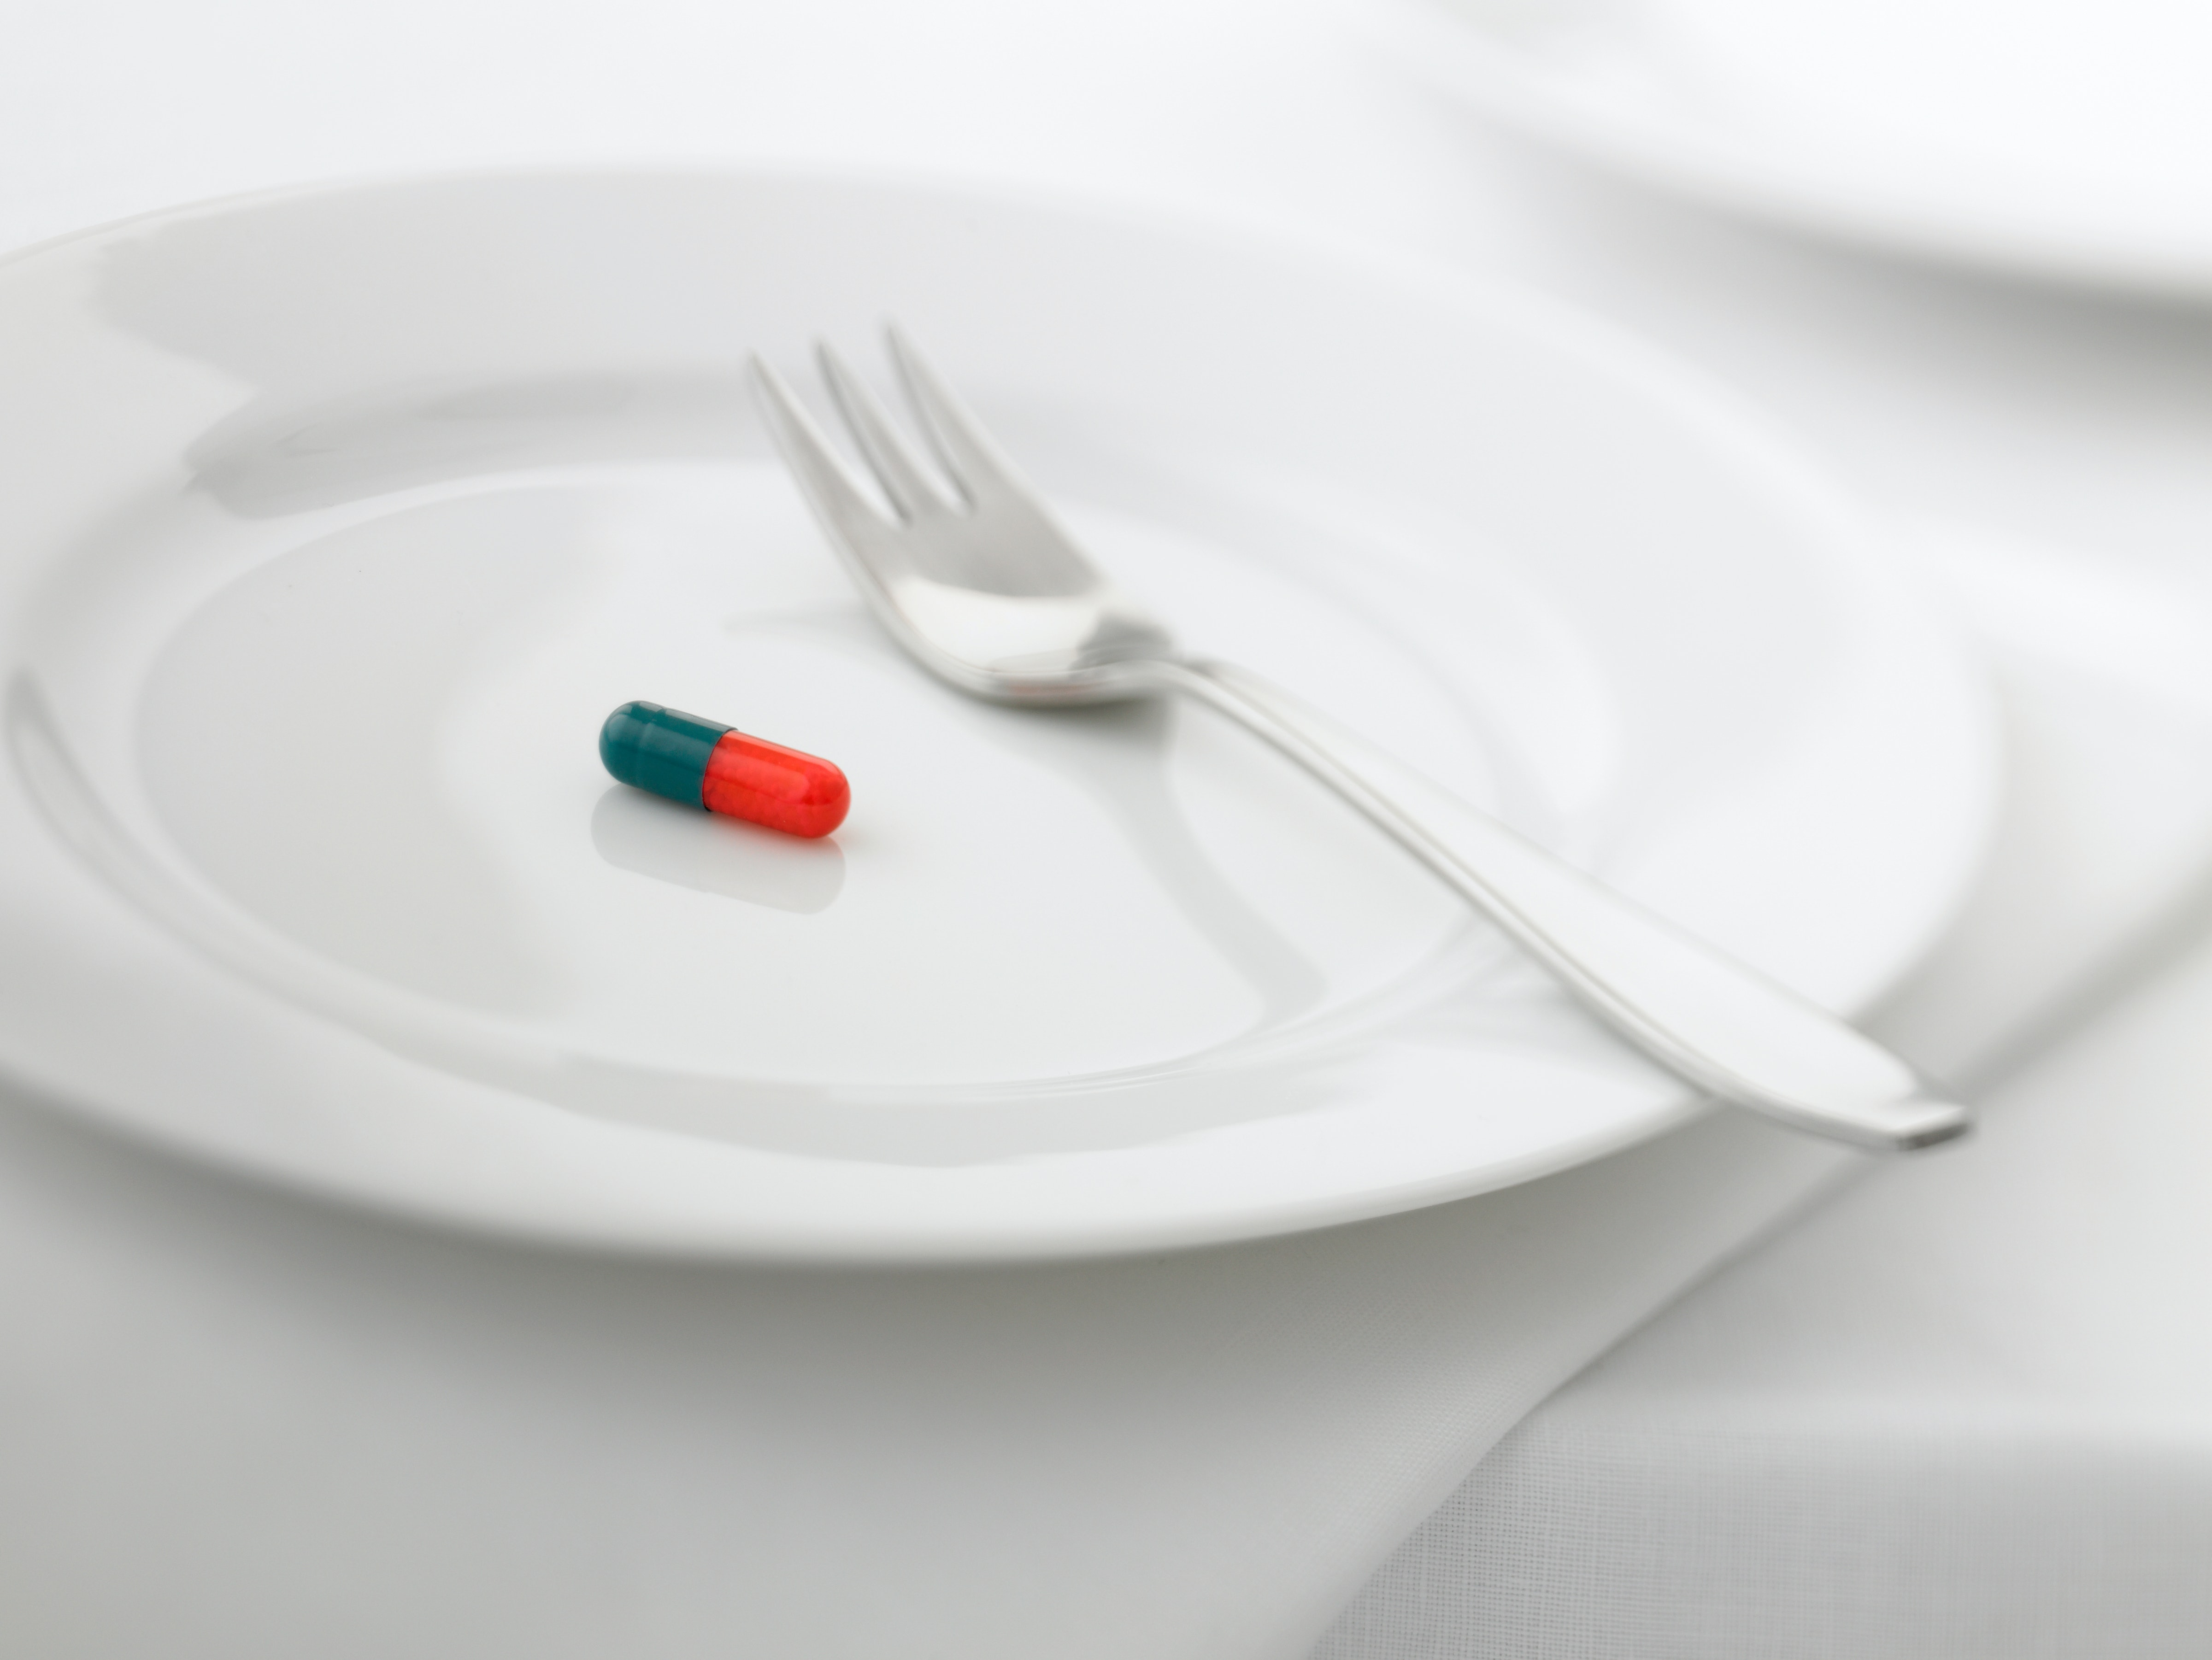 When Taking ADHD Meds Is the Same As Having an Eating Disorder